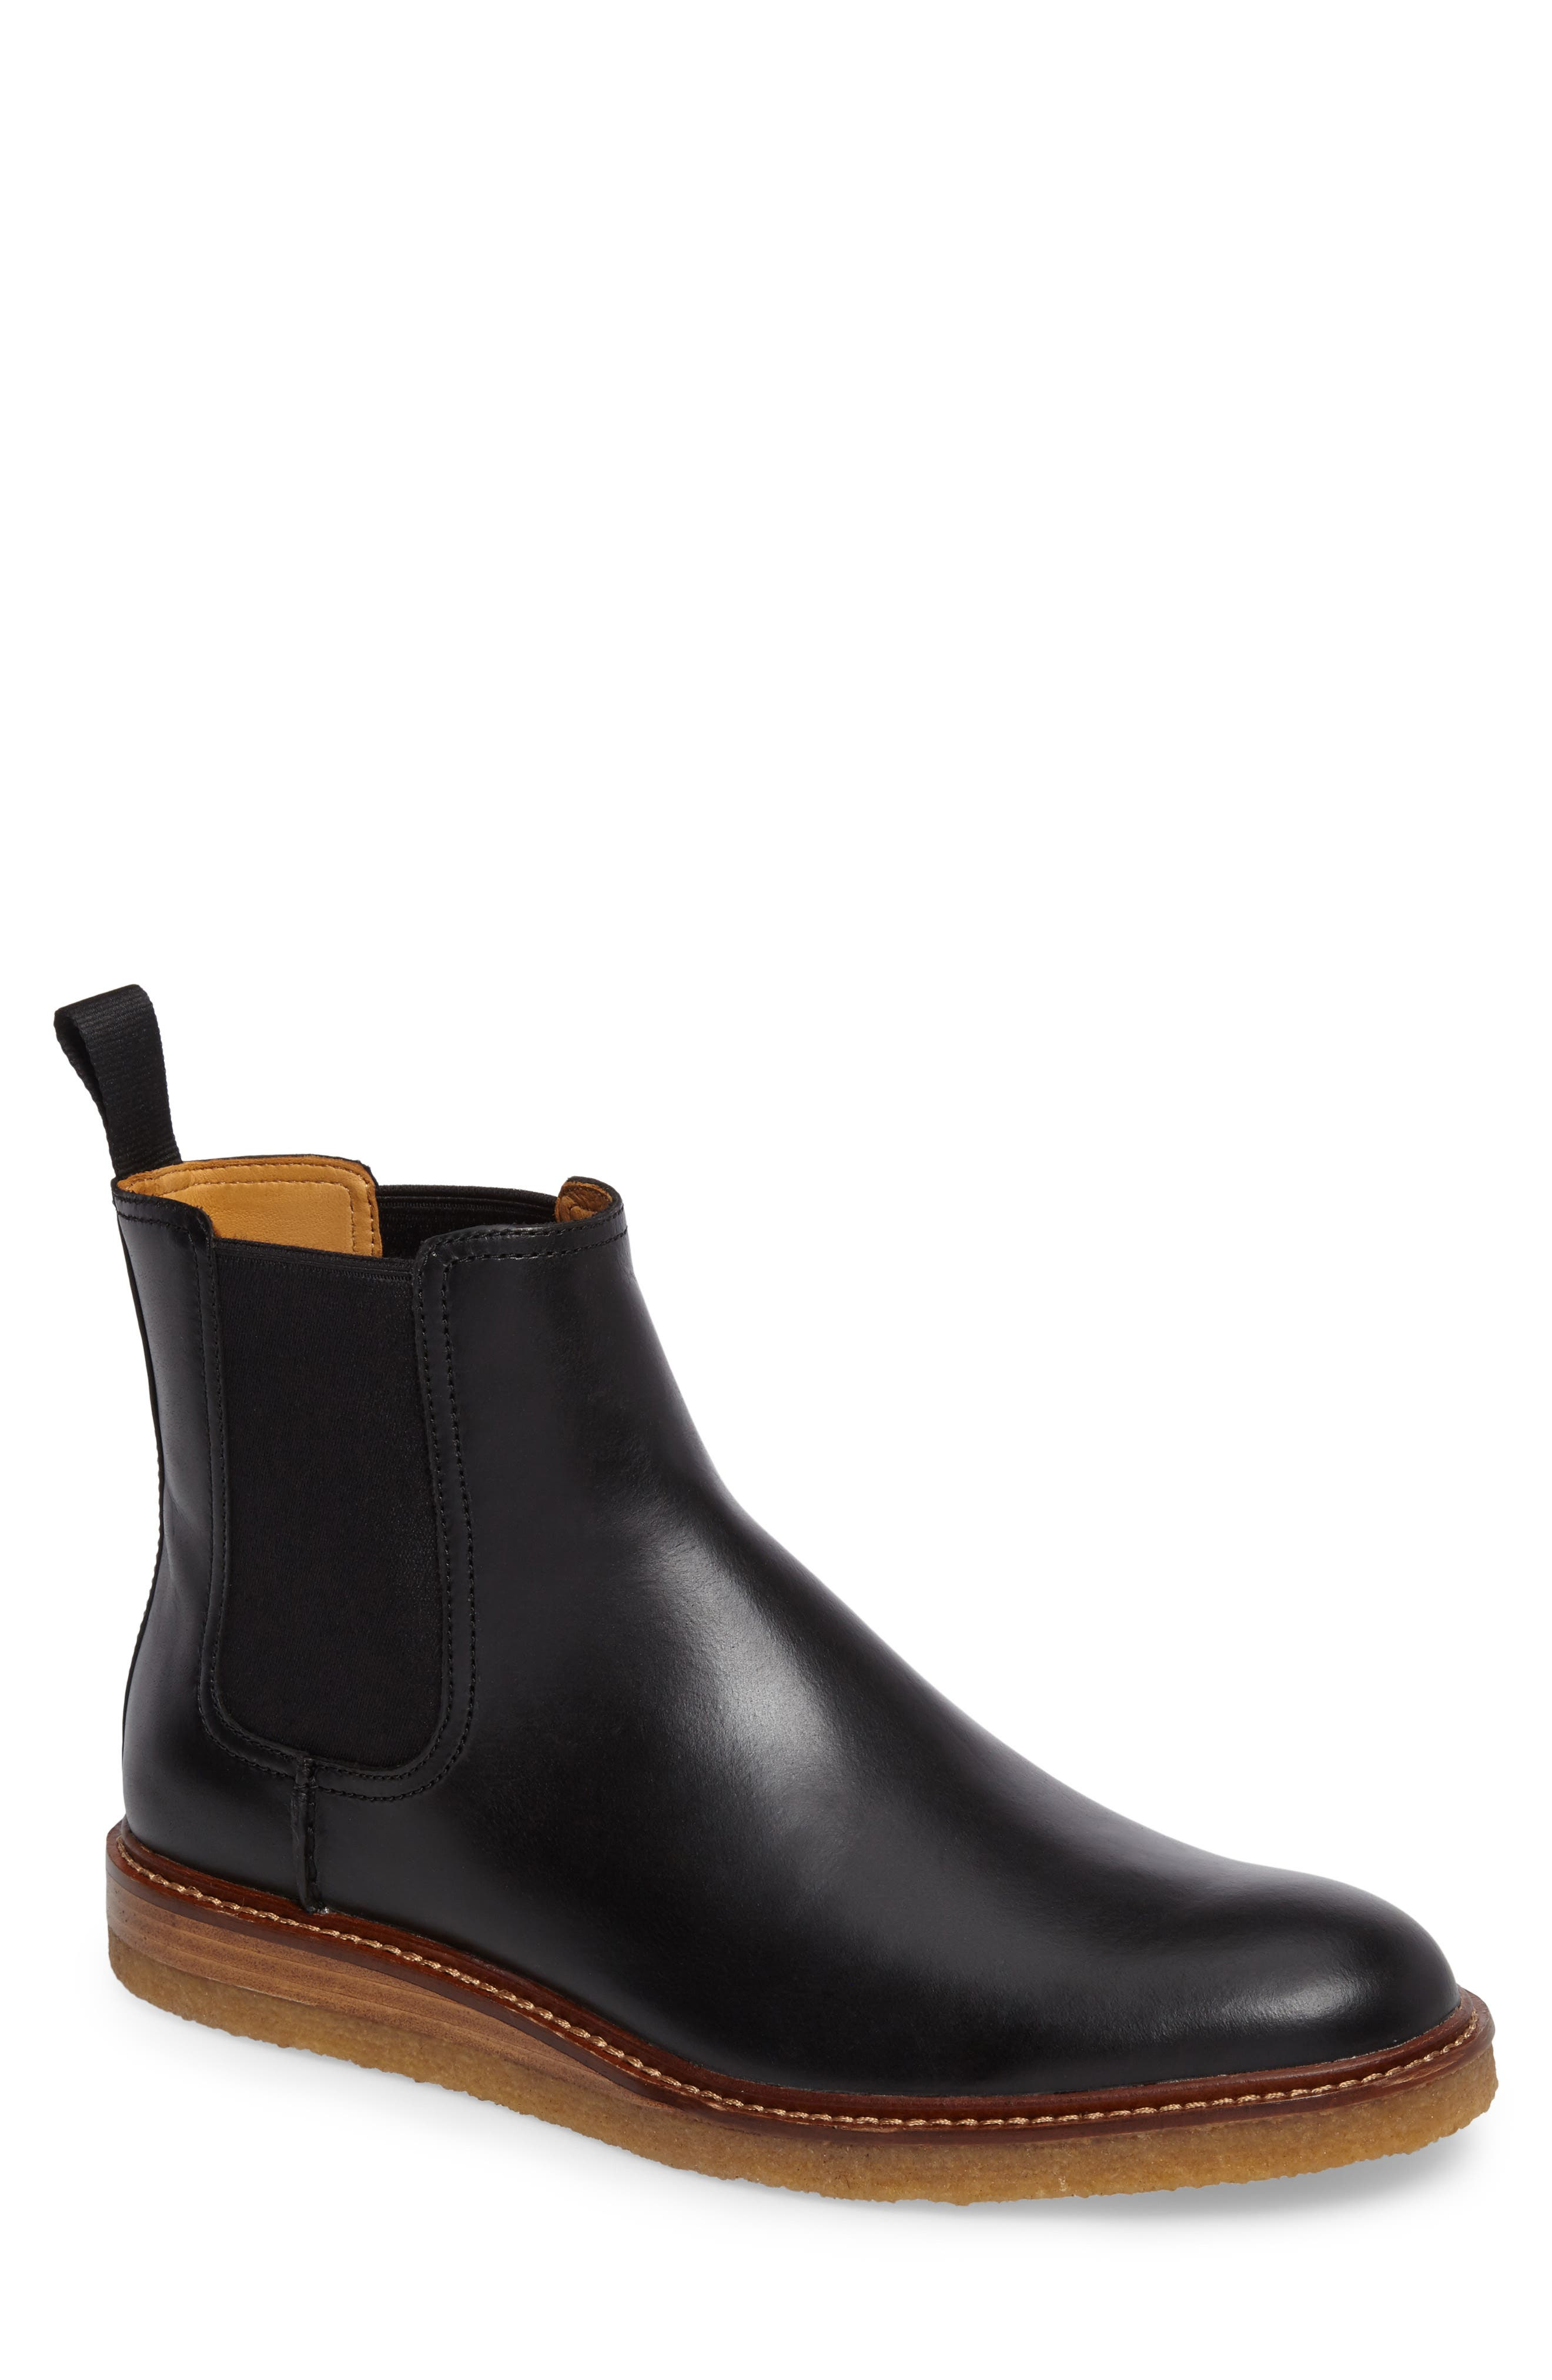 Leather Chelsea Boot,                             Main thumbnail 1, color,                             001